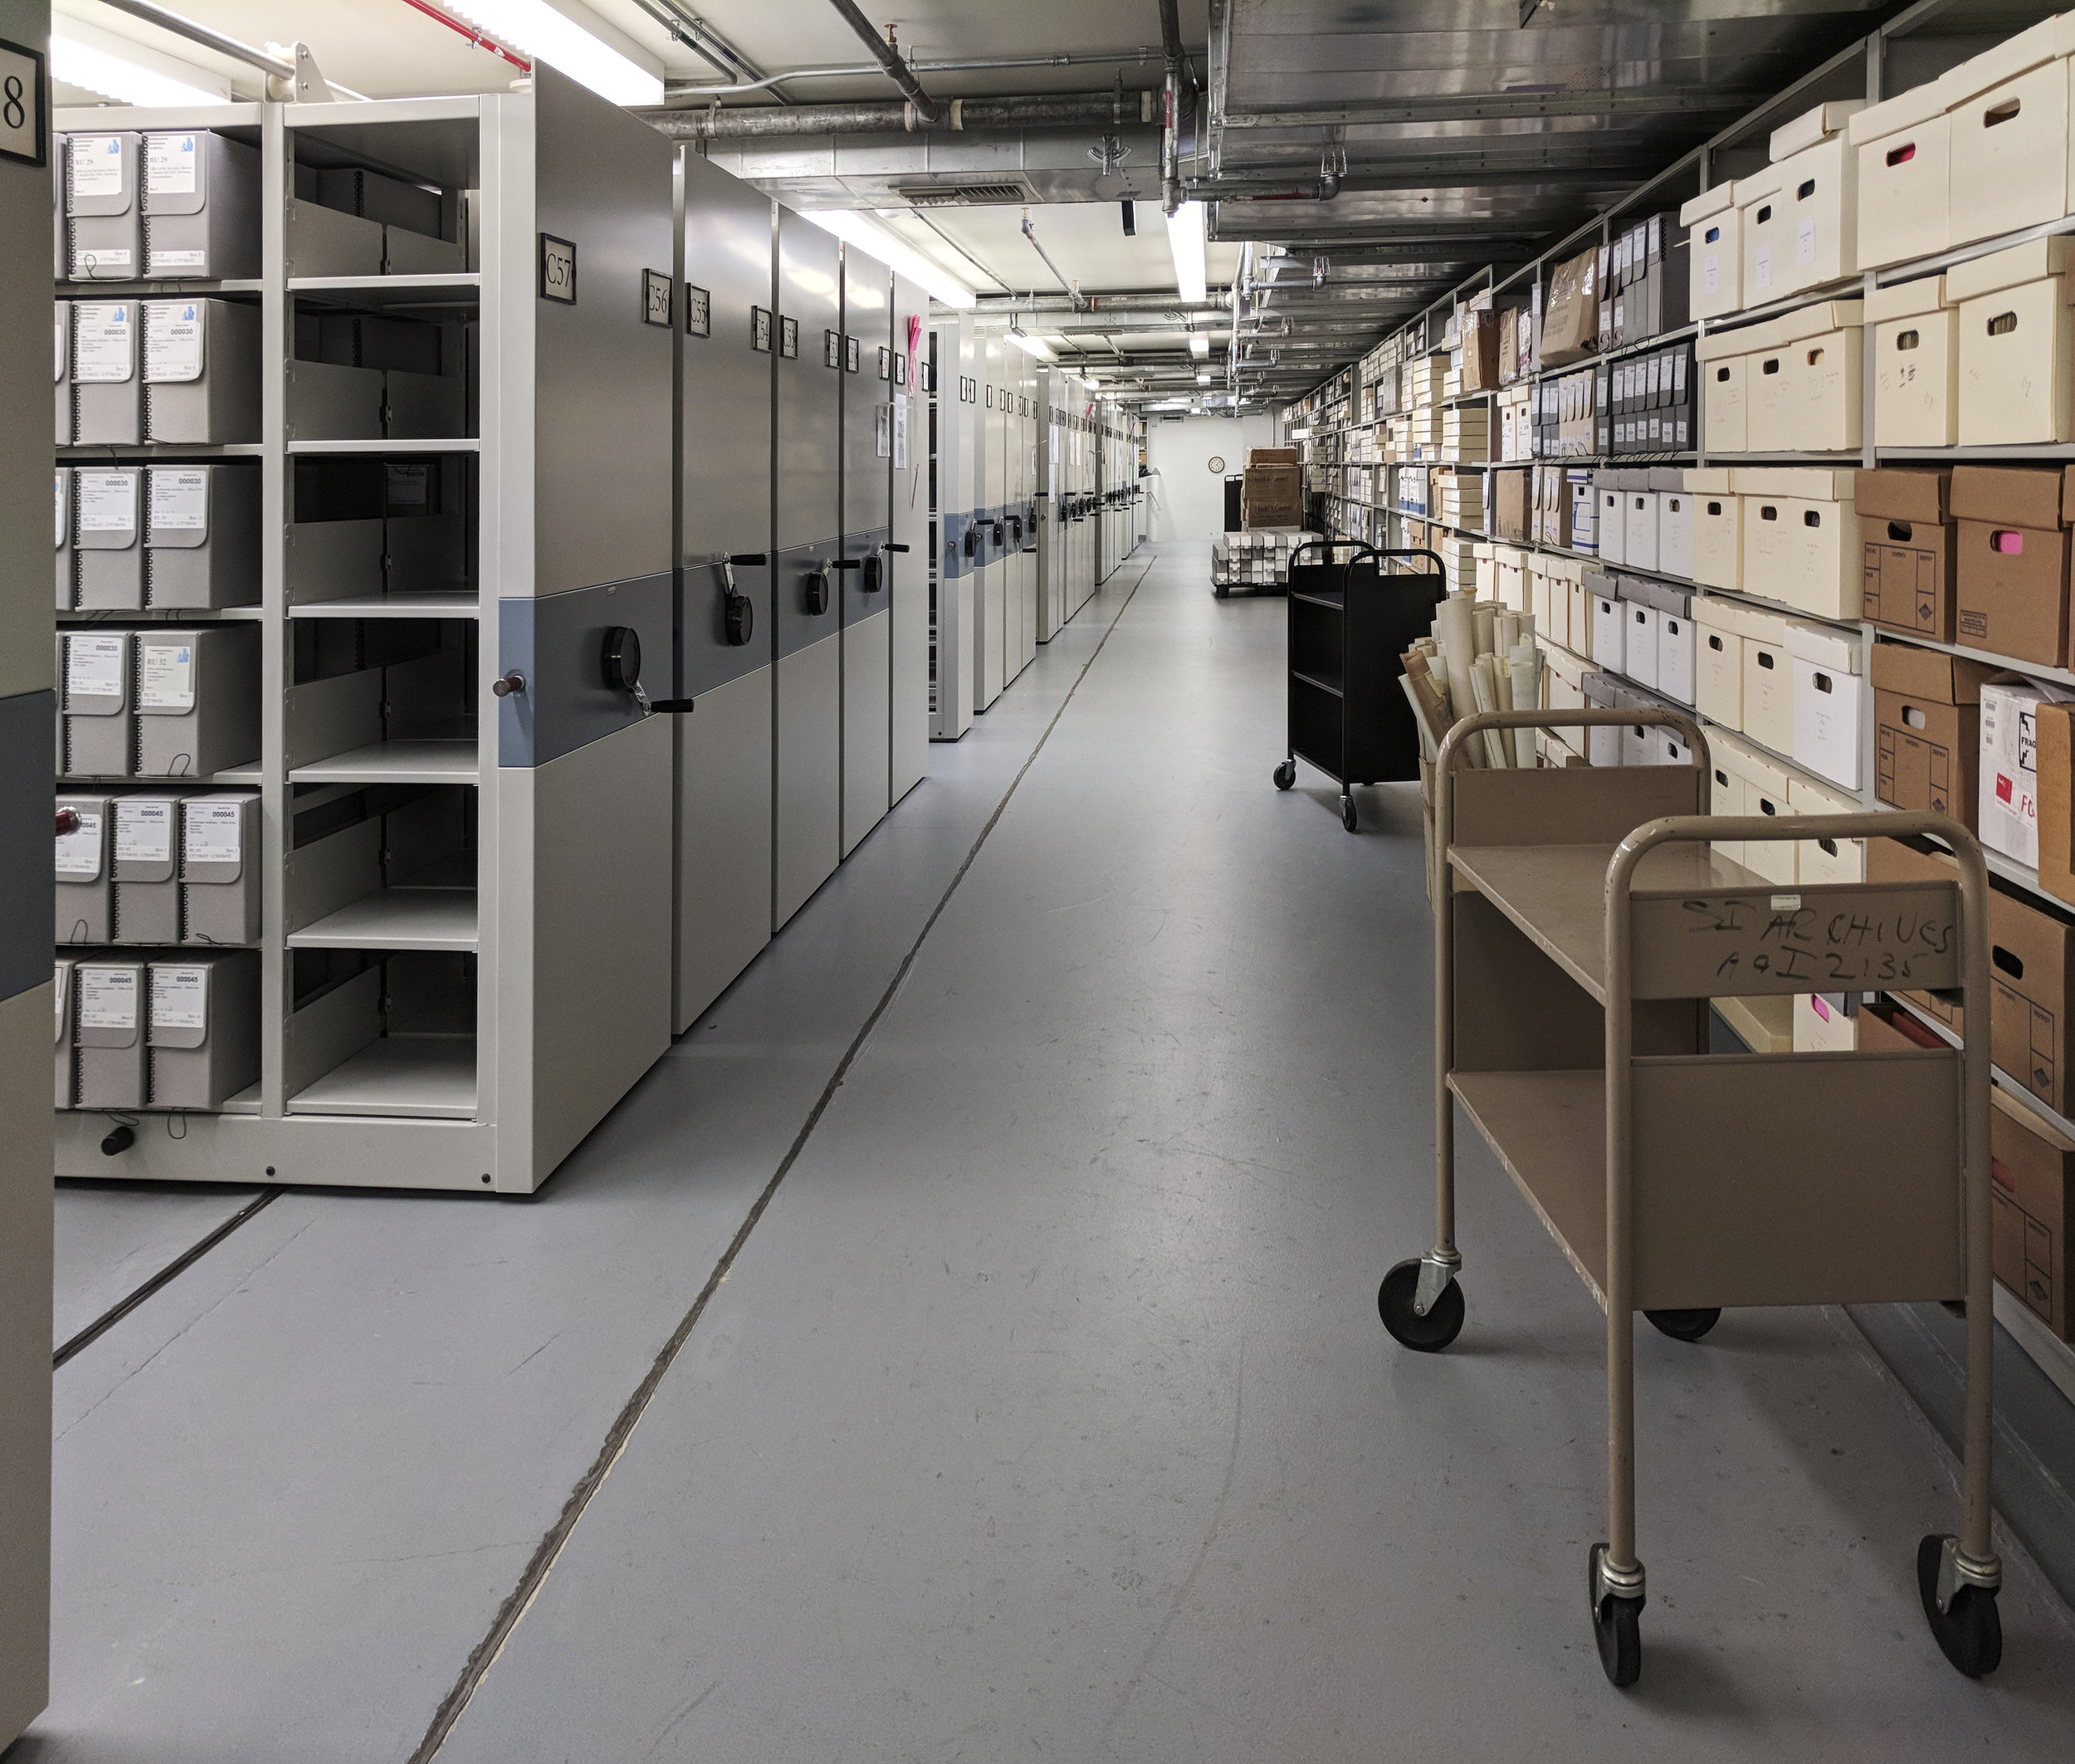 Storage in the Institutional Archives office building